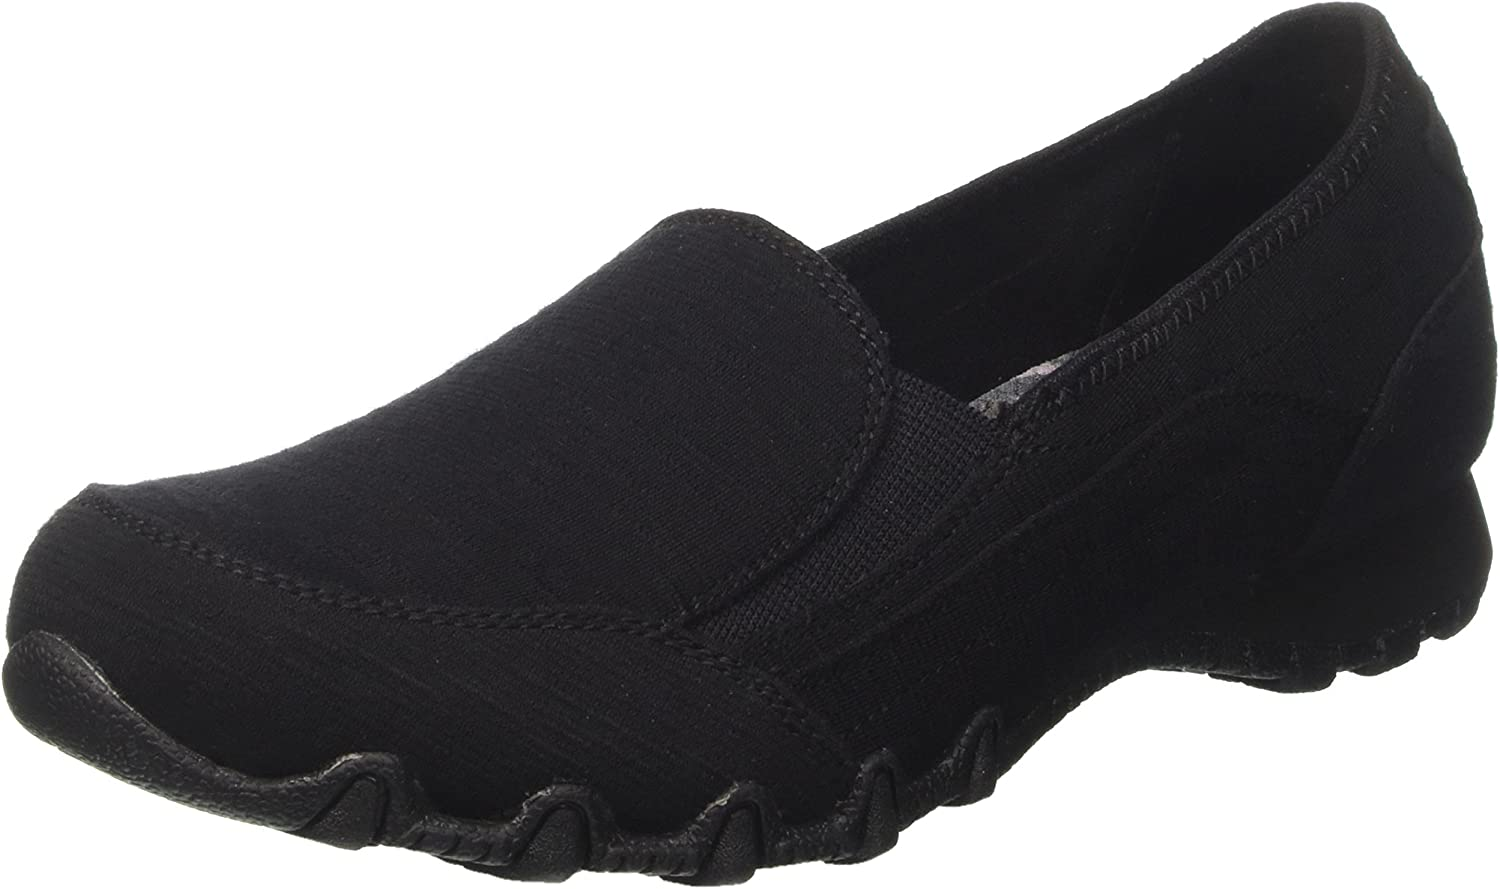 Skechers Womens Bikers - Lounger Slip-On Loafer